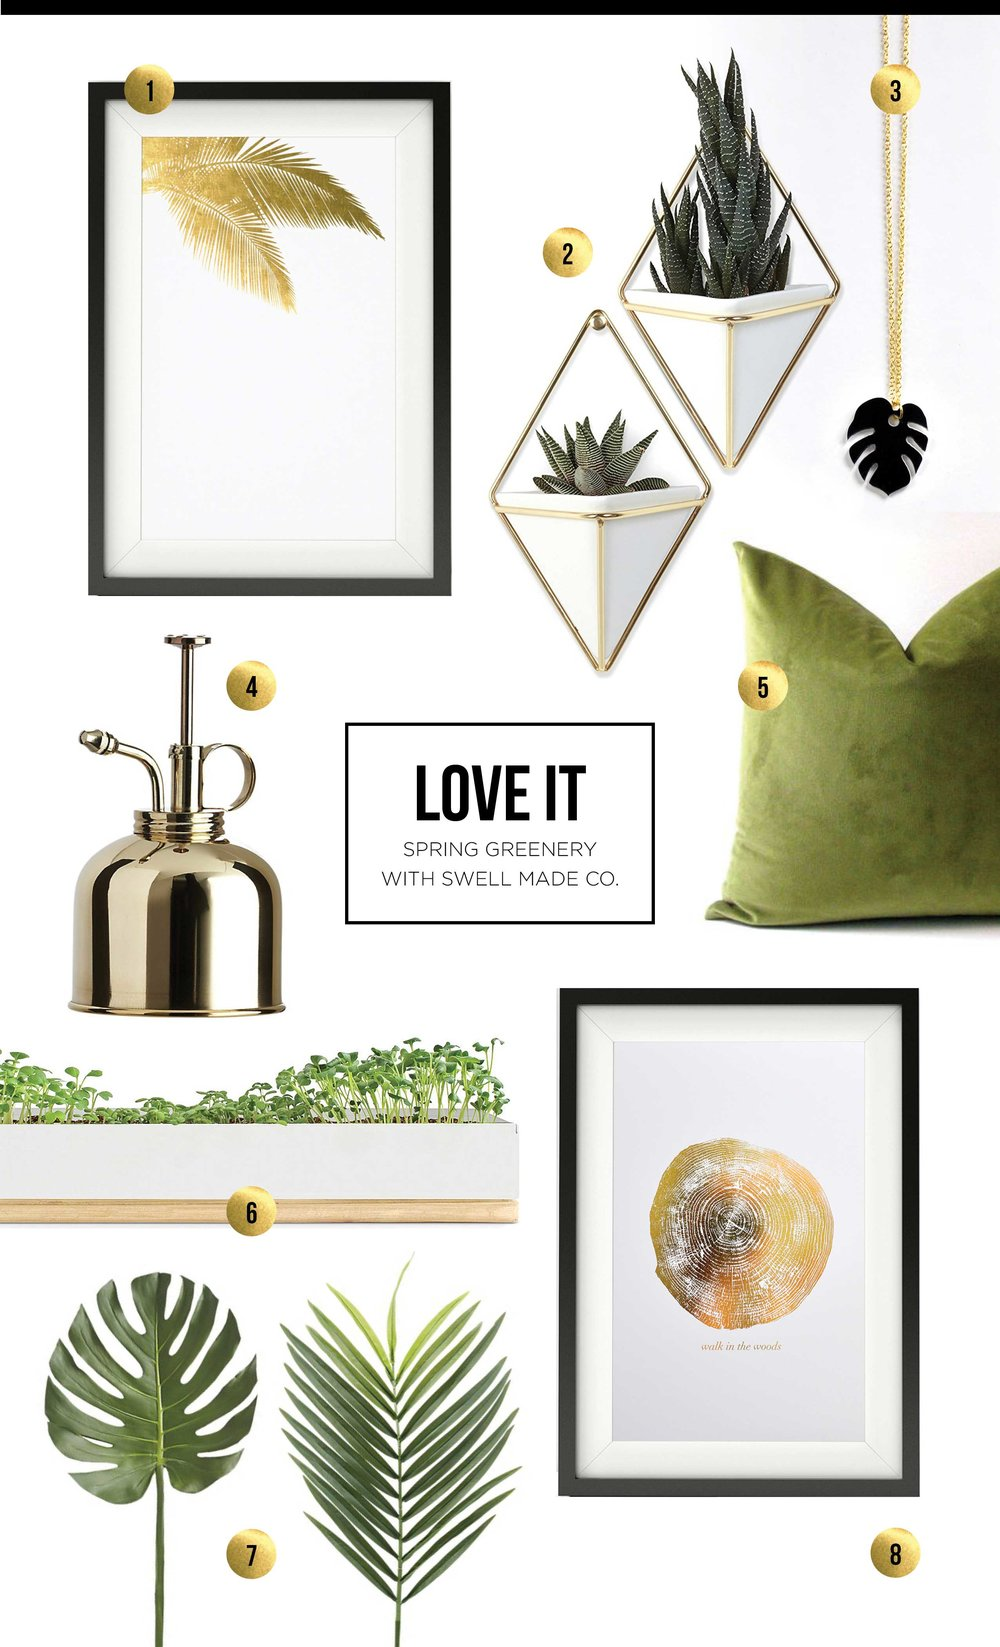 LOVE IT - Spring Greenery with Swell Made Co.